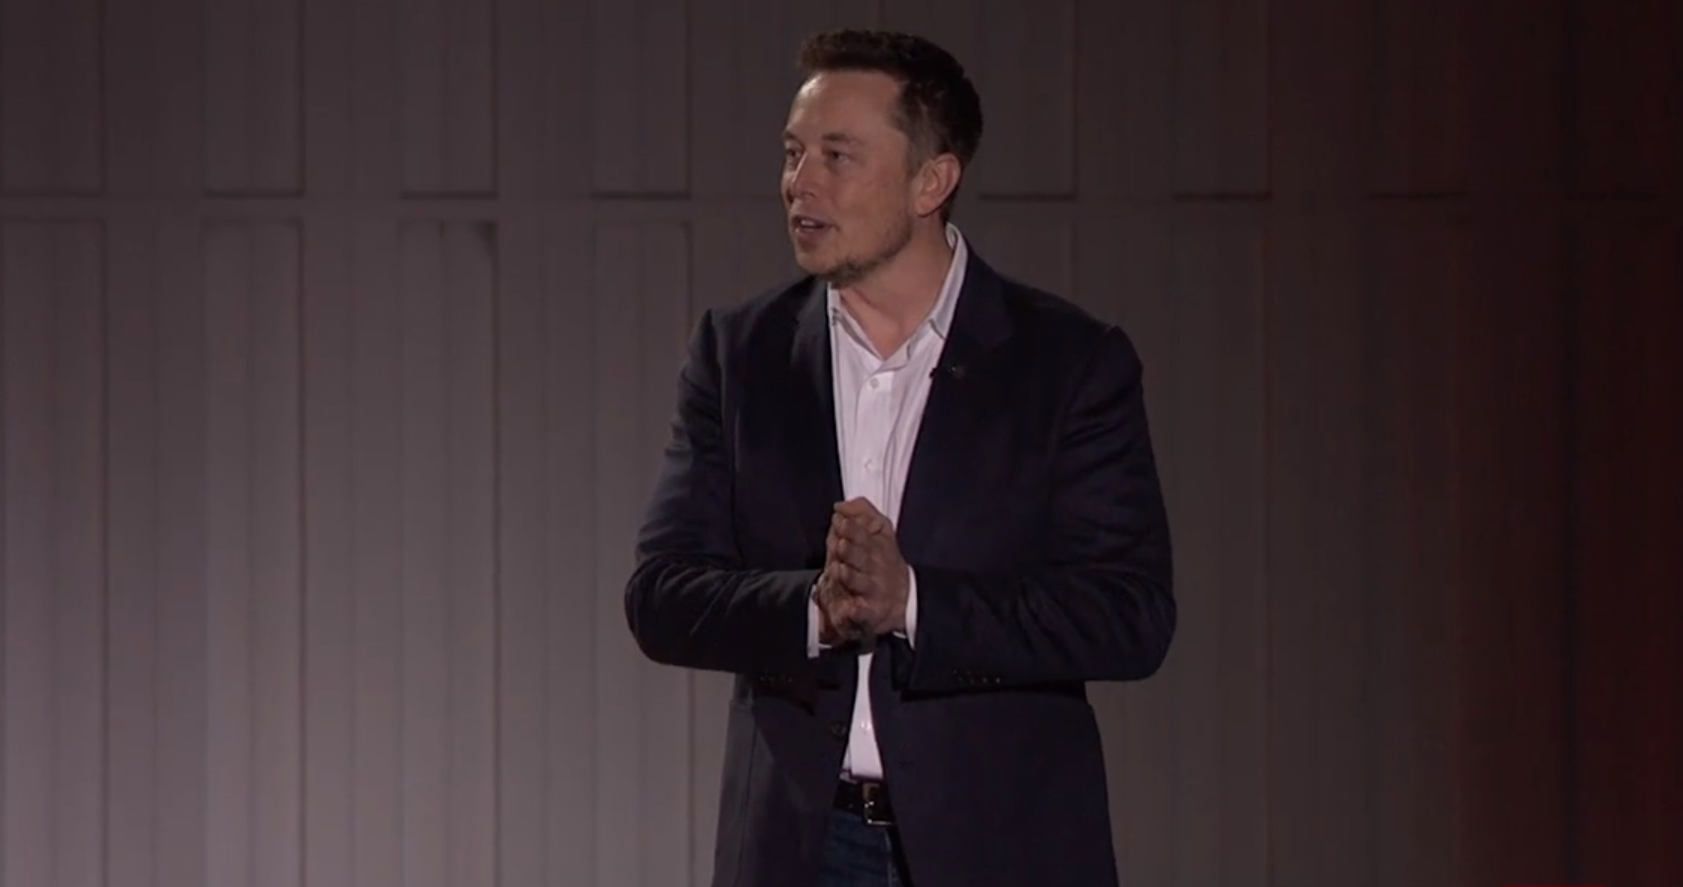 Elon Musk wants to go to Mars, even if it means losing his life